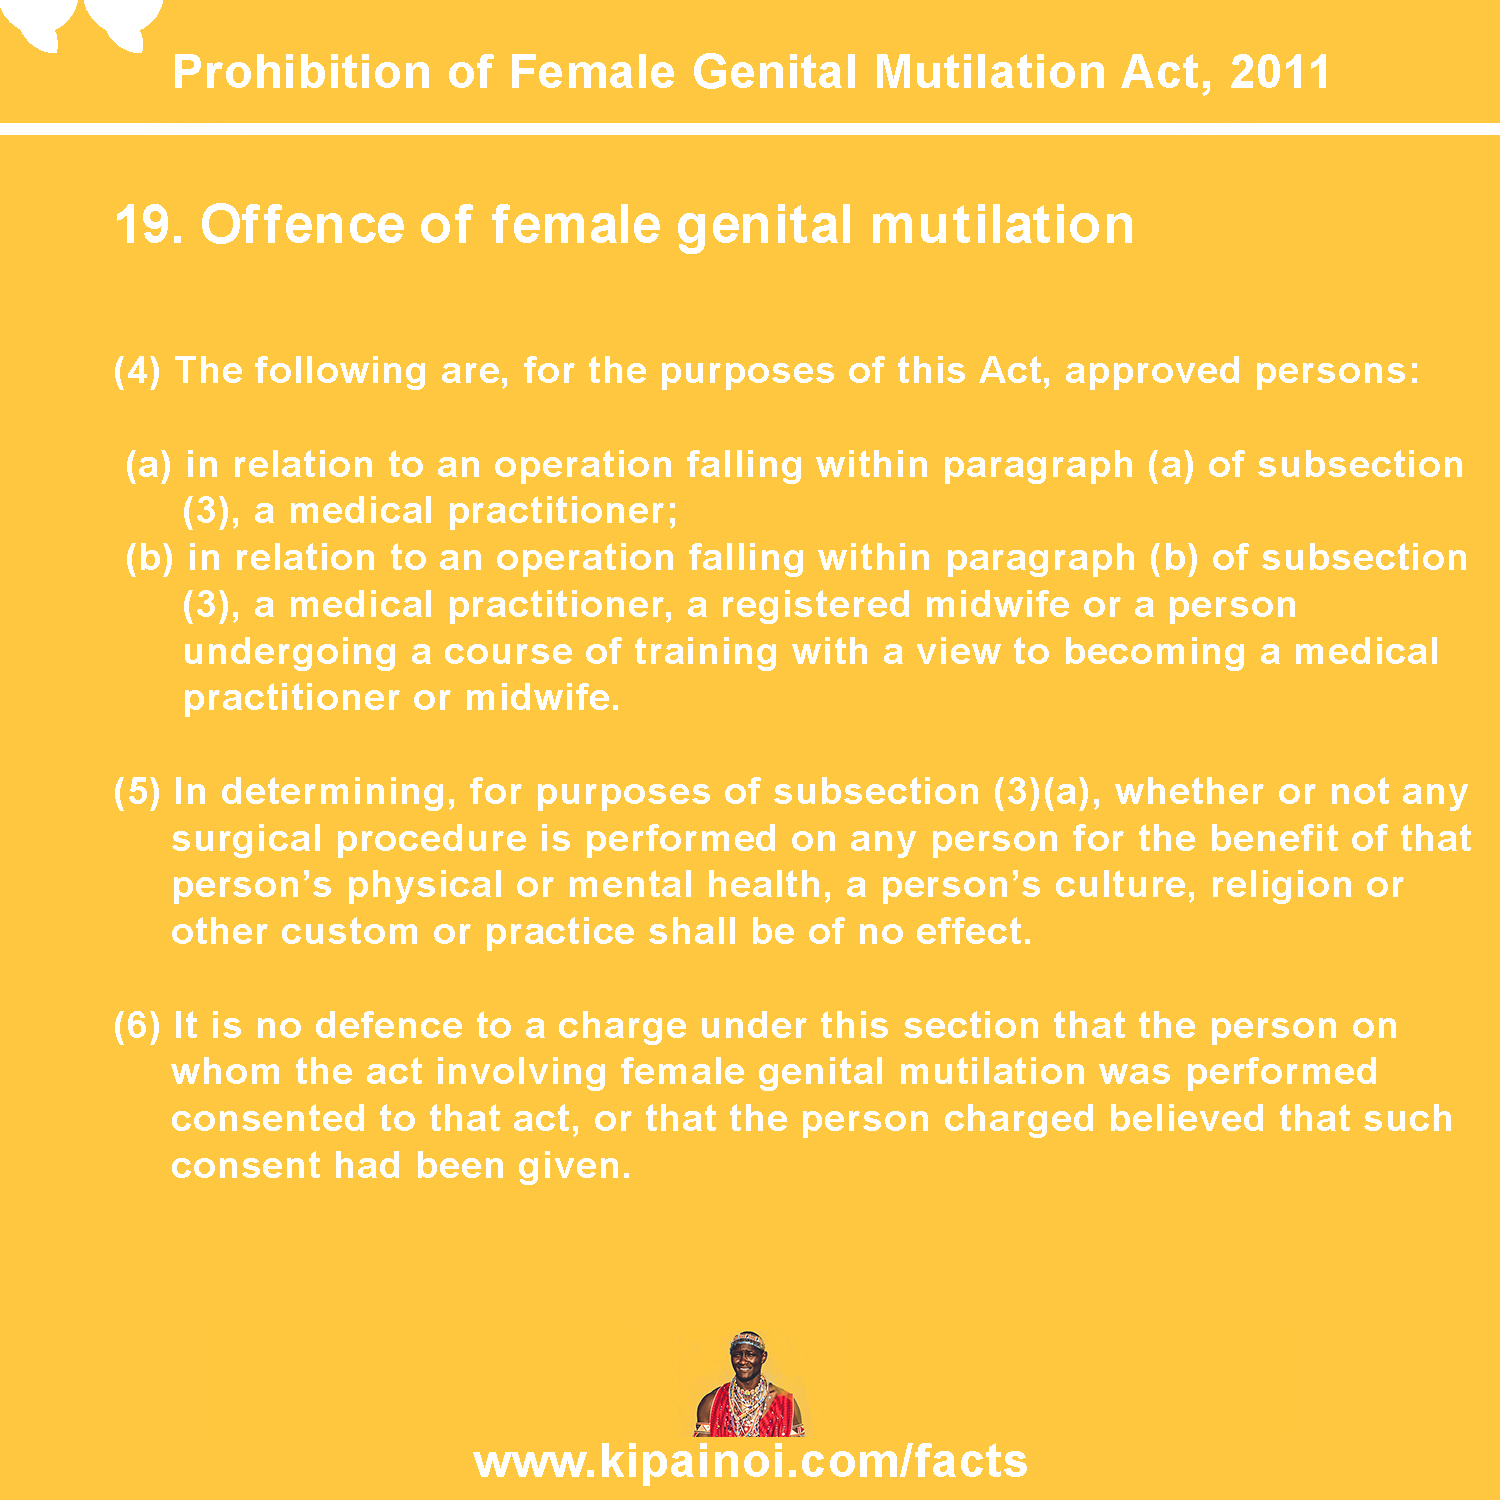 19.1 Offence of female genital mutilation